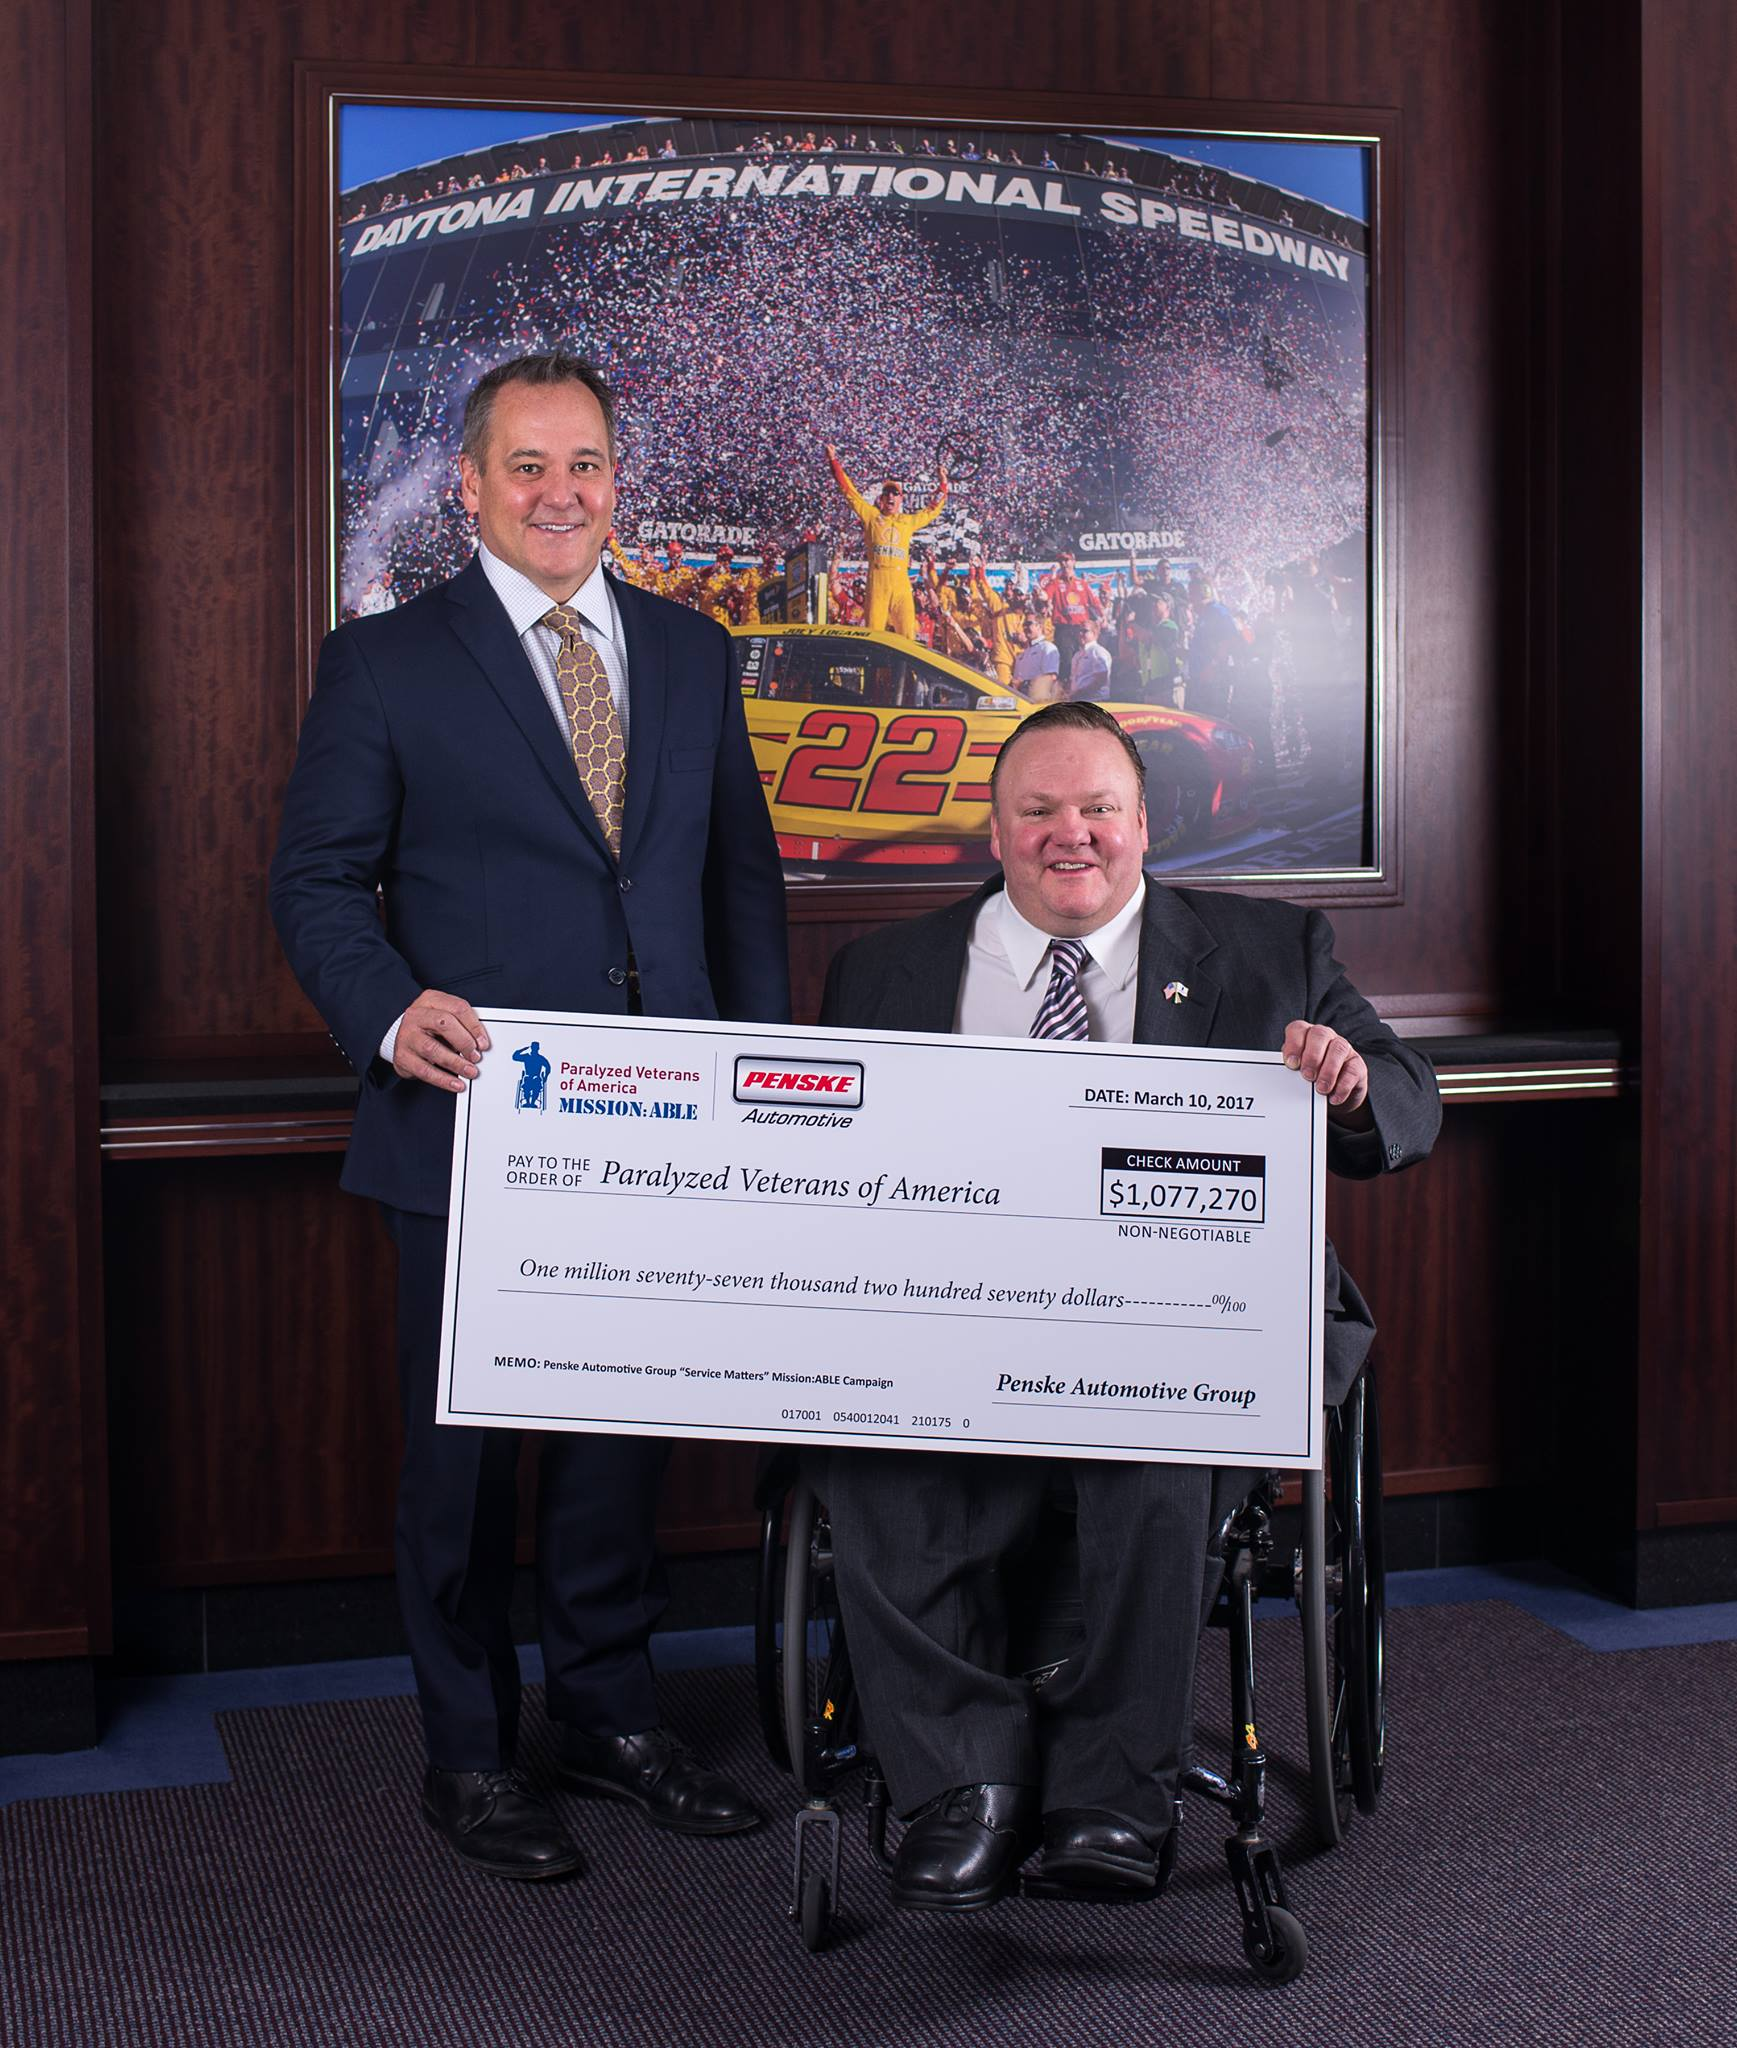 Rob Kurnick, President of Penske Automotive Group and Tom Wheaton, National Treasurer of Paralyzed Veterans of America.